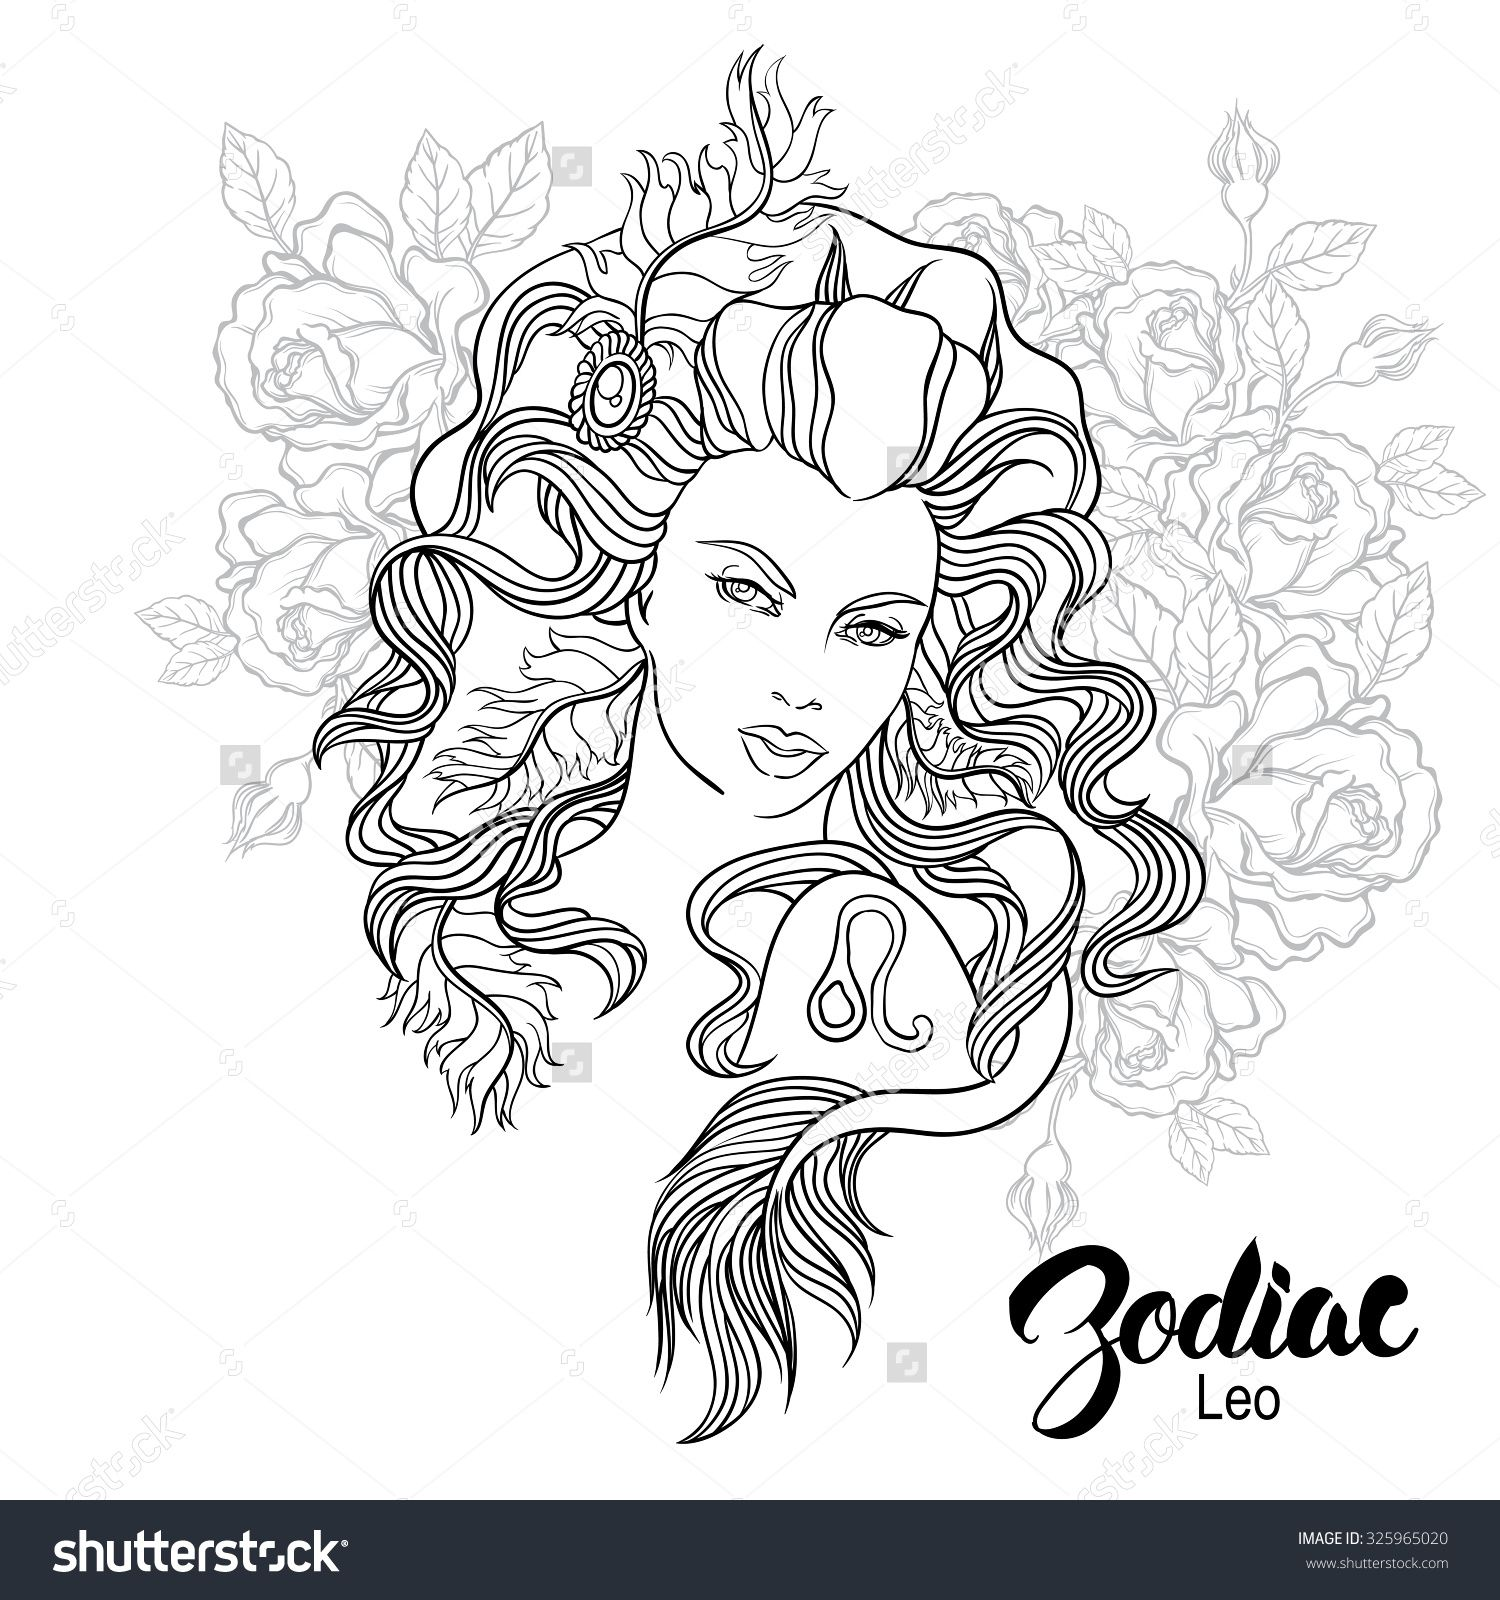 Zodiac Leo Girl Coloring Page Shutterstock 325965020 Floral